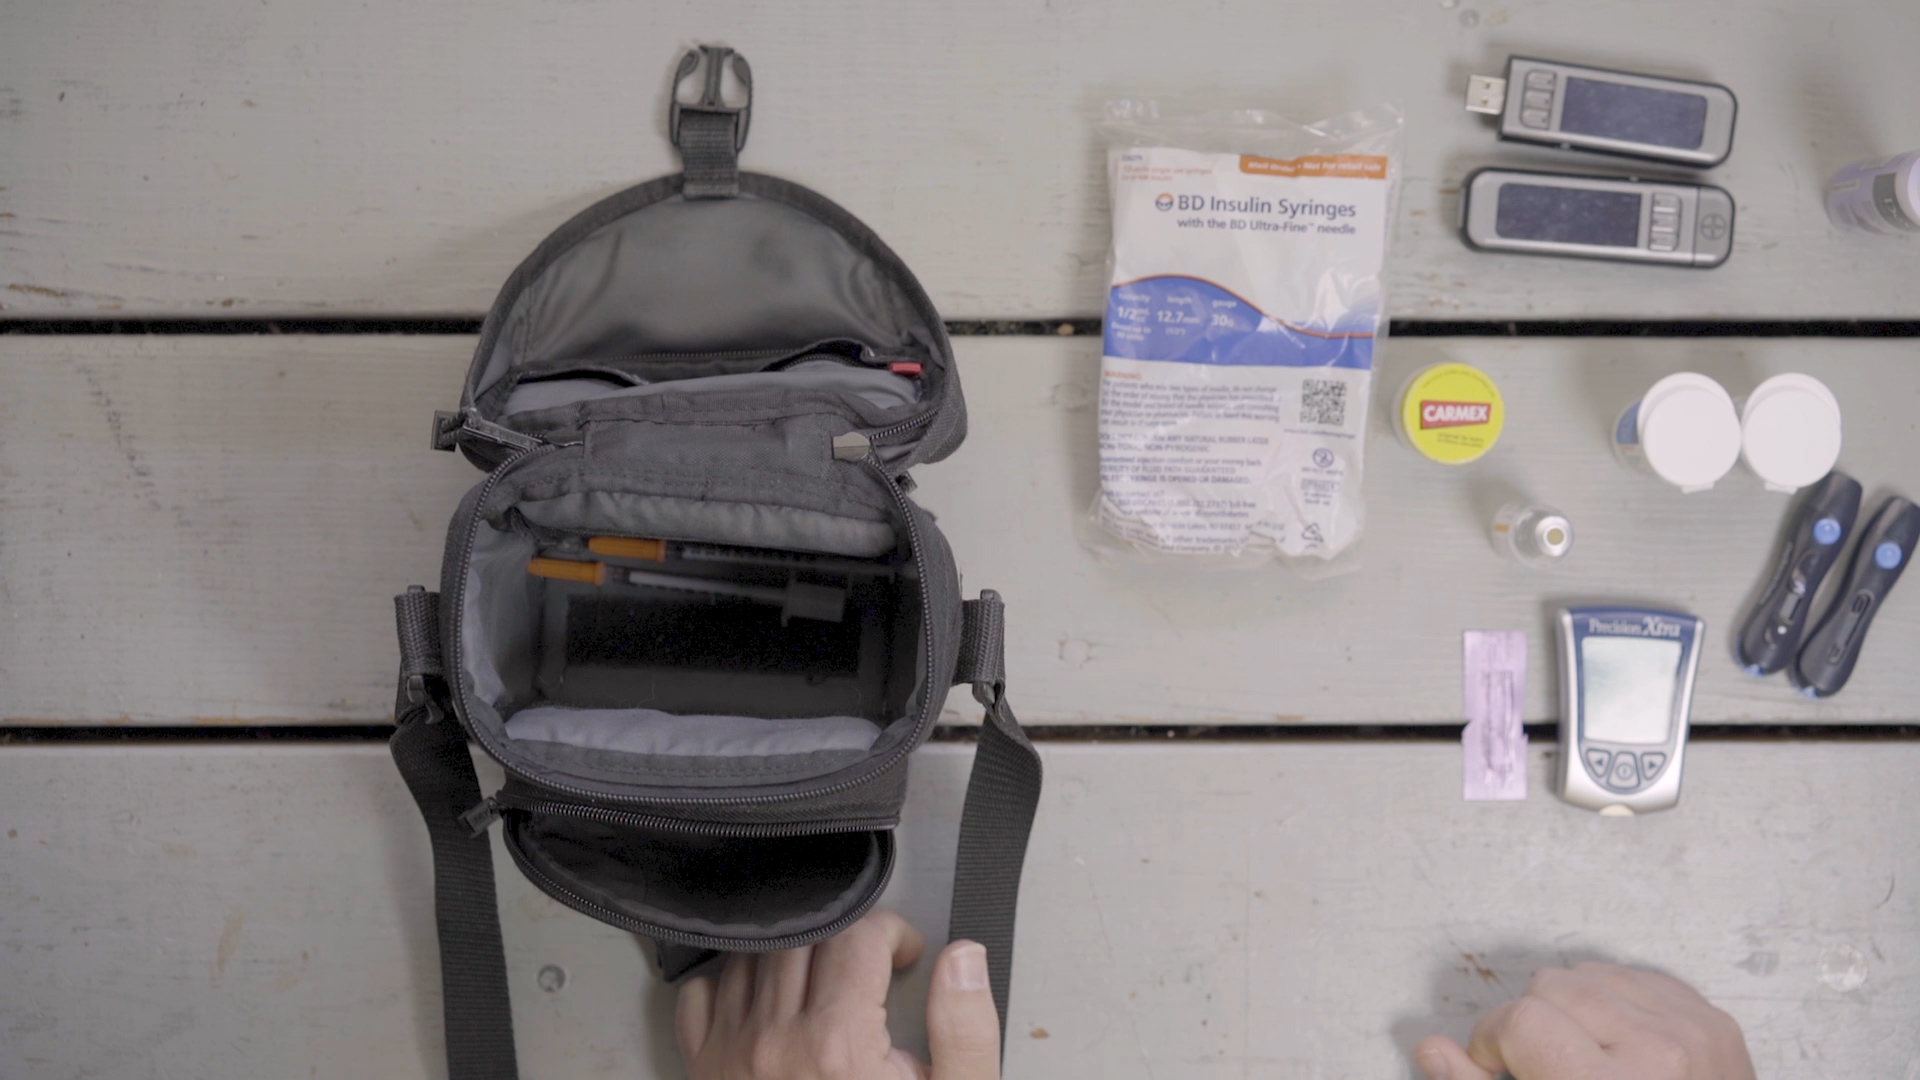 Dan uses a camera bag to keep his supplies in.